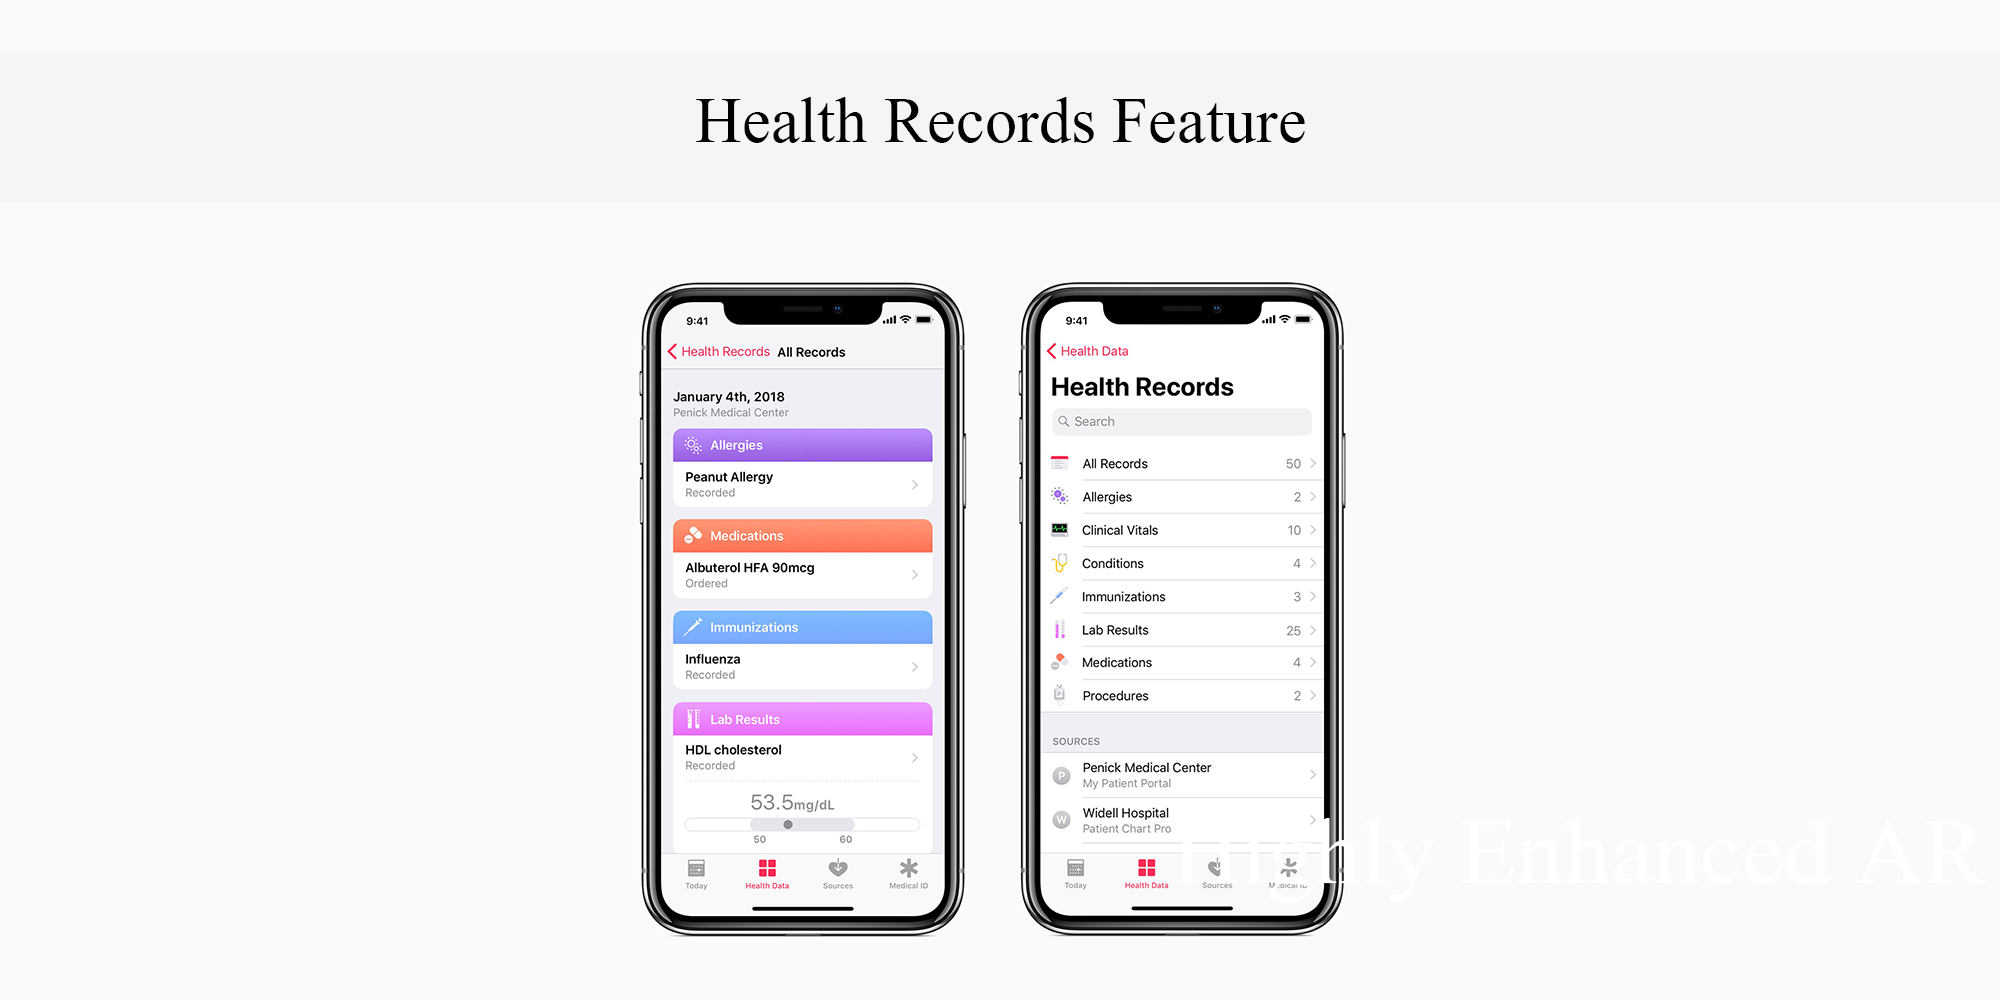 Health Records Feature